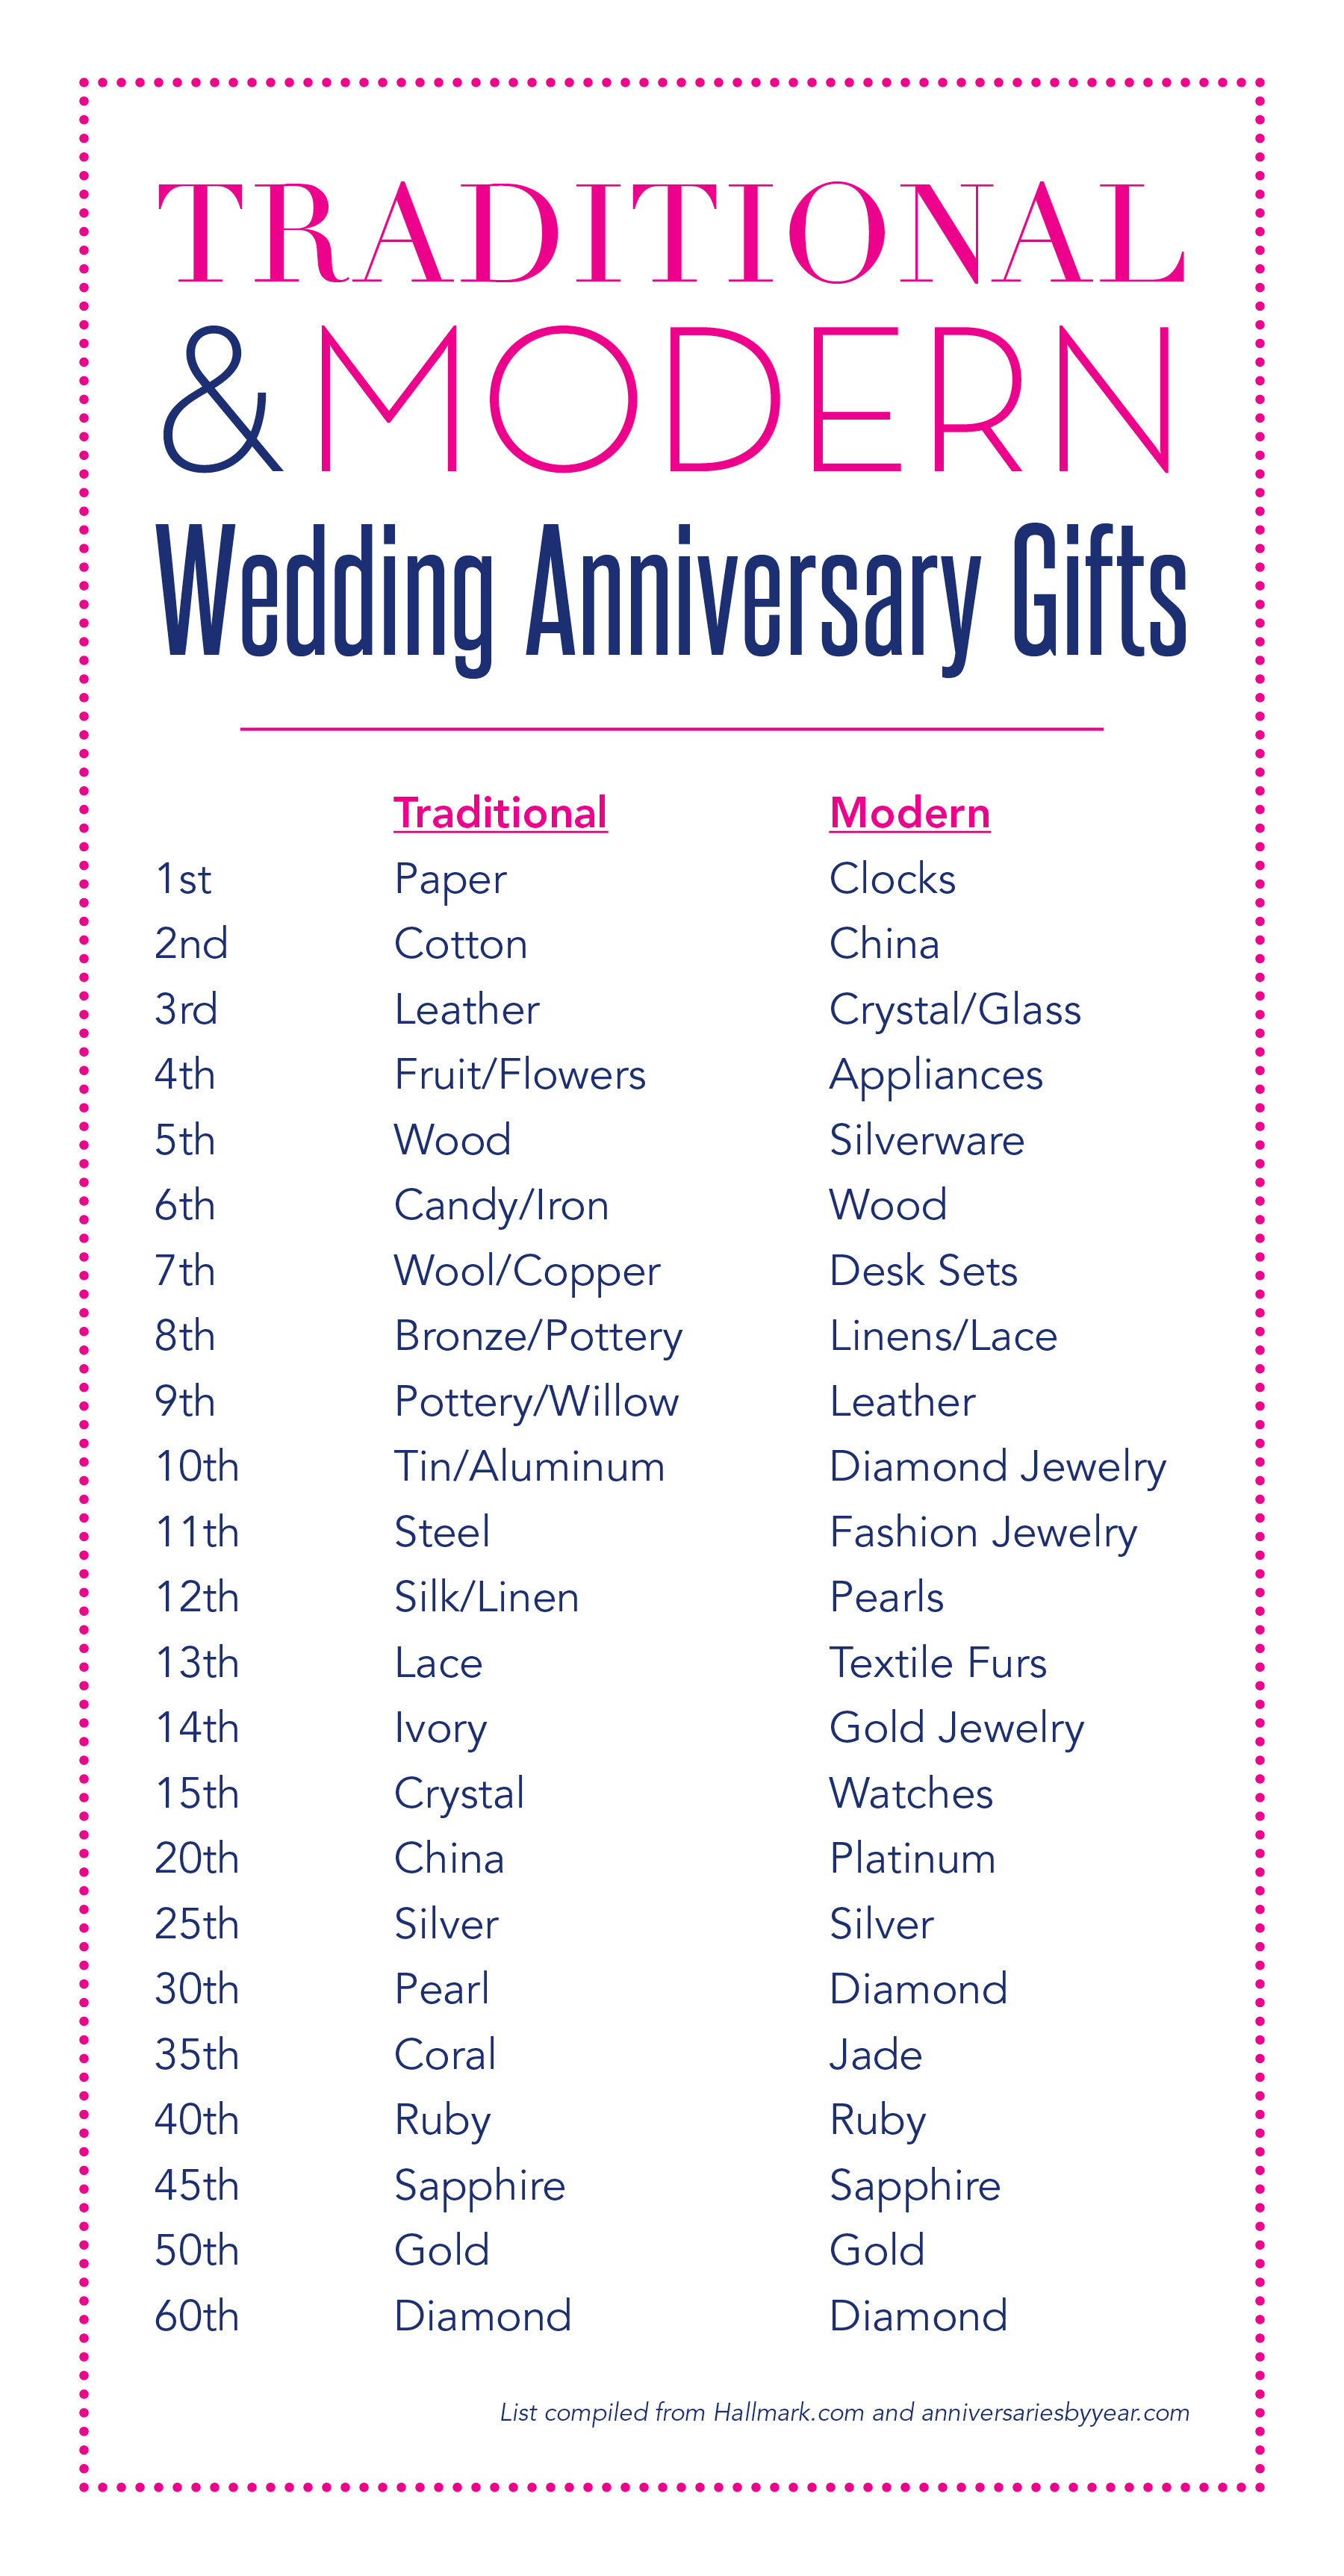 Wedding Gift List Ideas Uk : wedding anniversary gifts (traditional & modern)